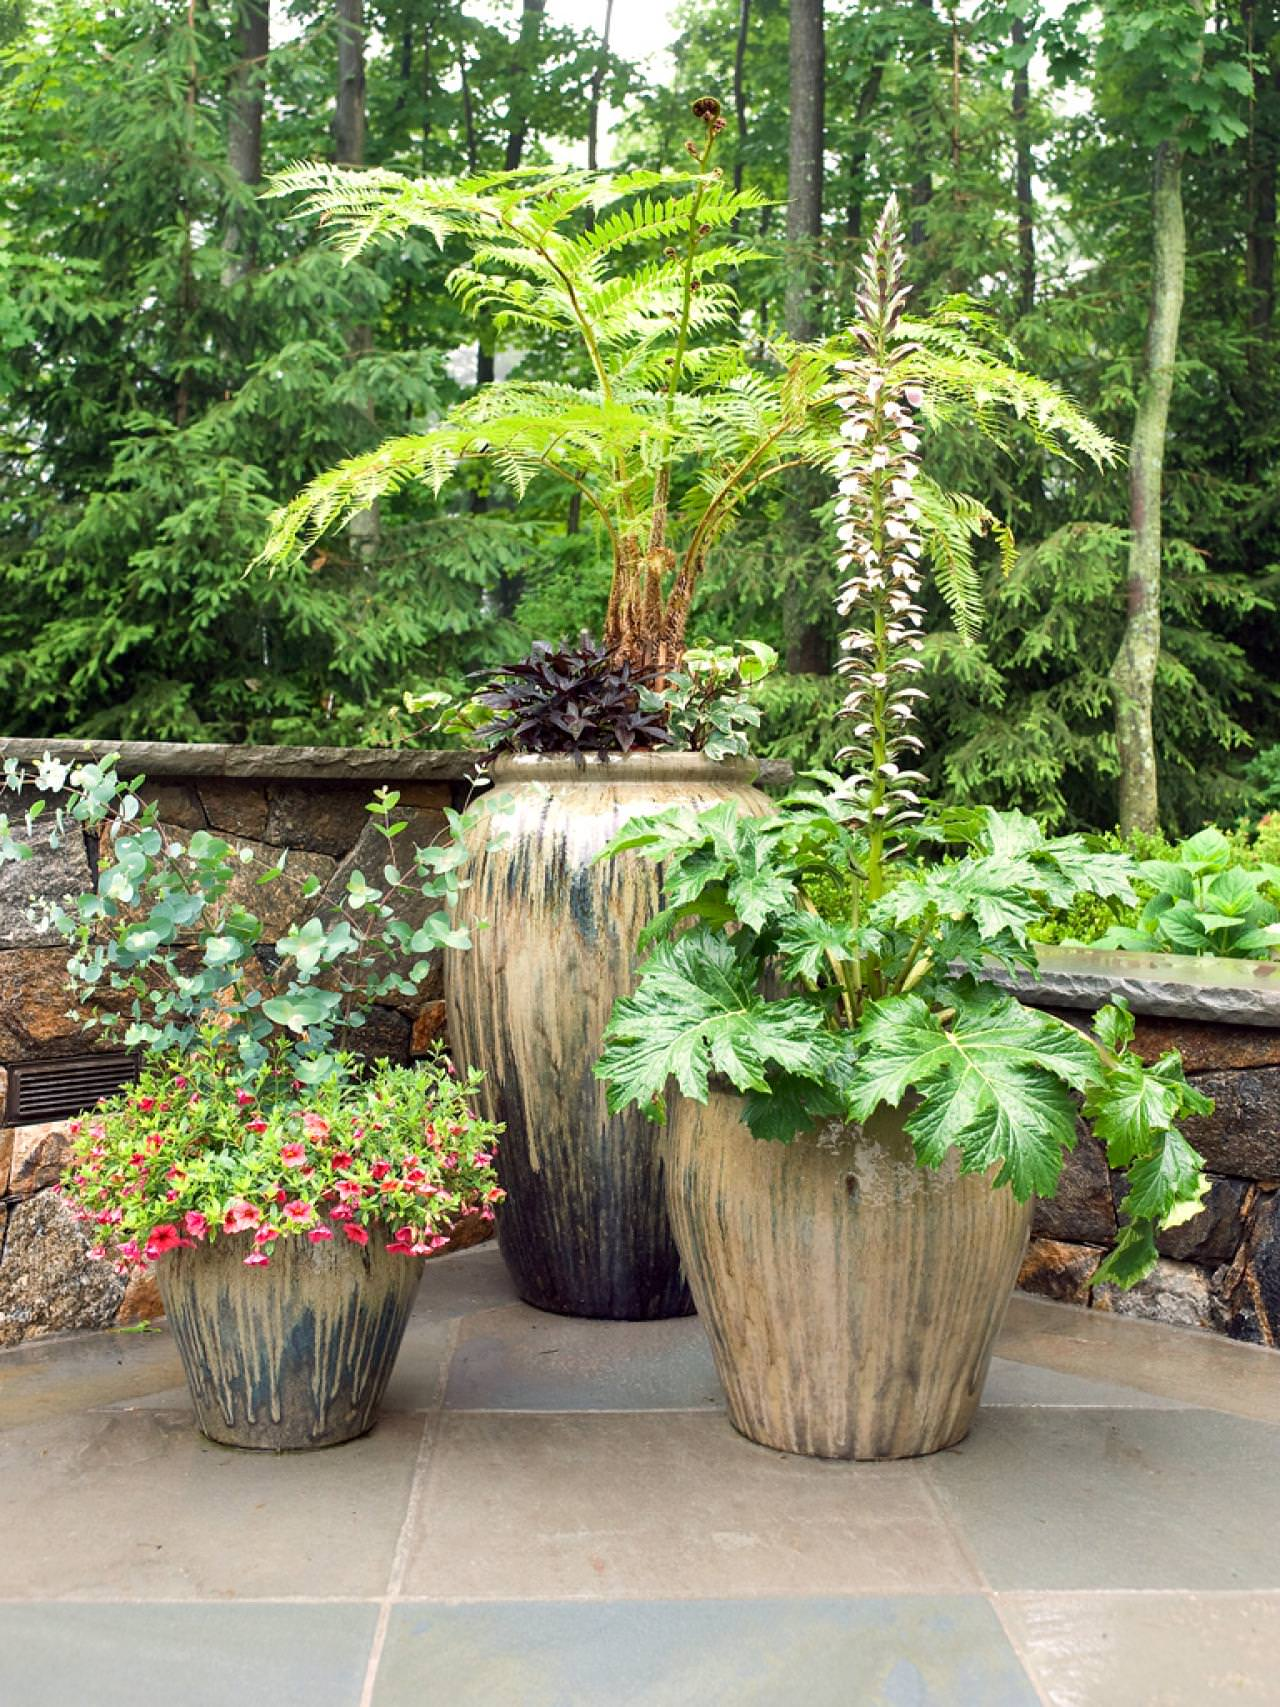 Genial Outdoor Flower Planter Ideas